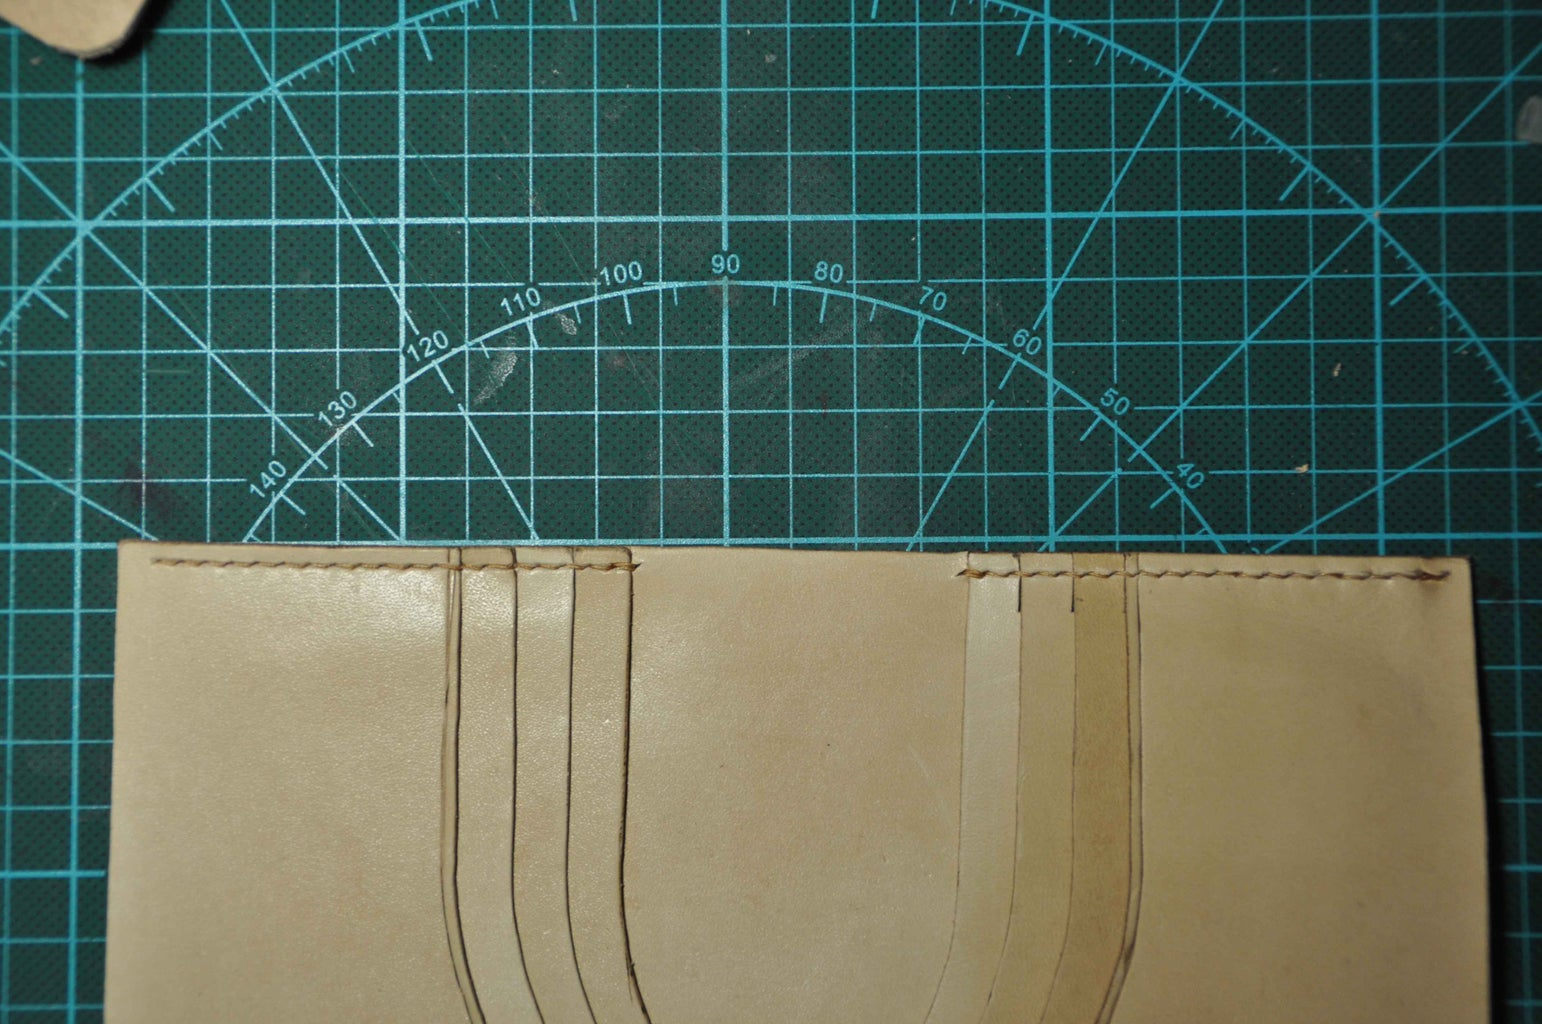 Sew the Upside.And Don't Forget to Sew the Bottom of the Card Slots. Each One Should Be Sewed.